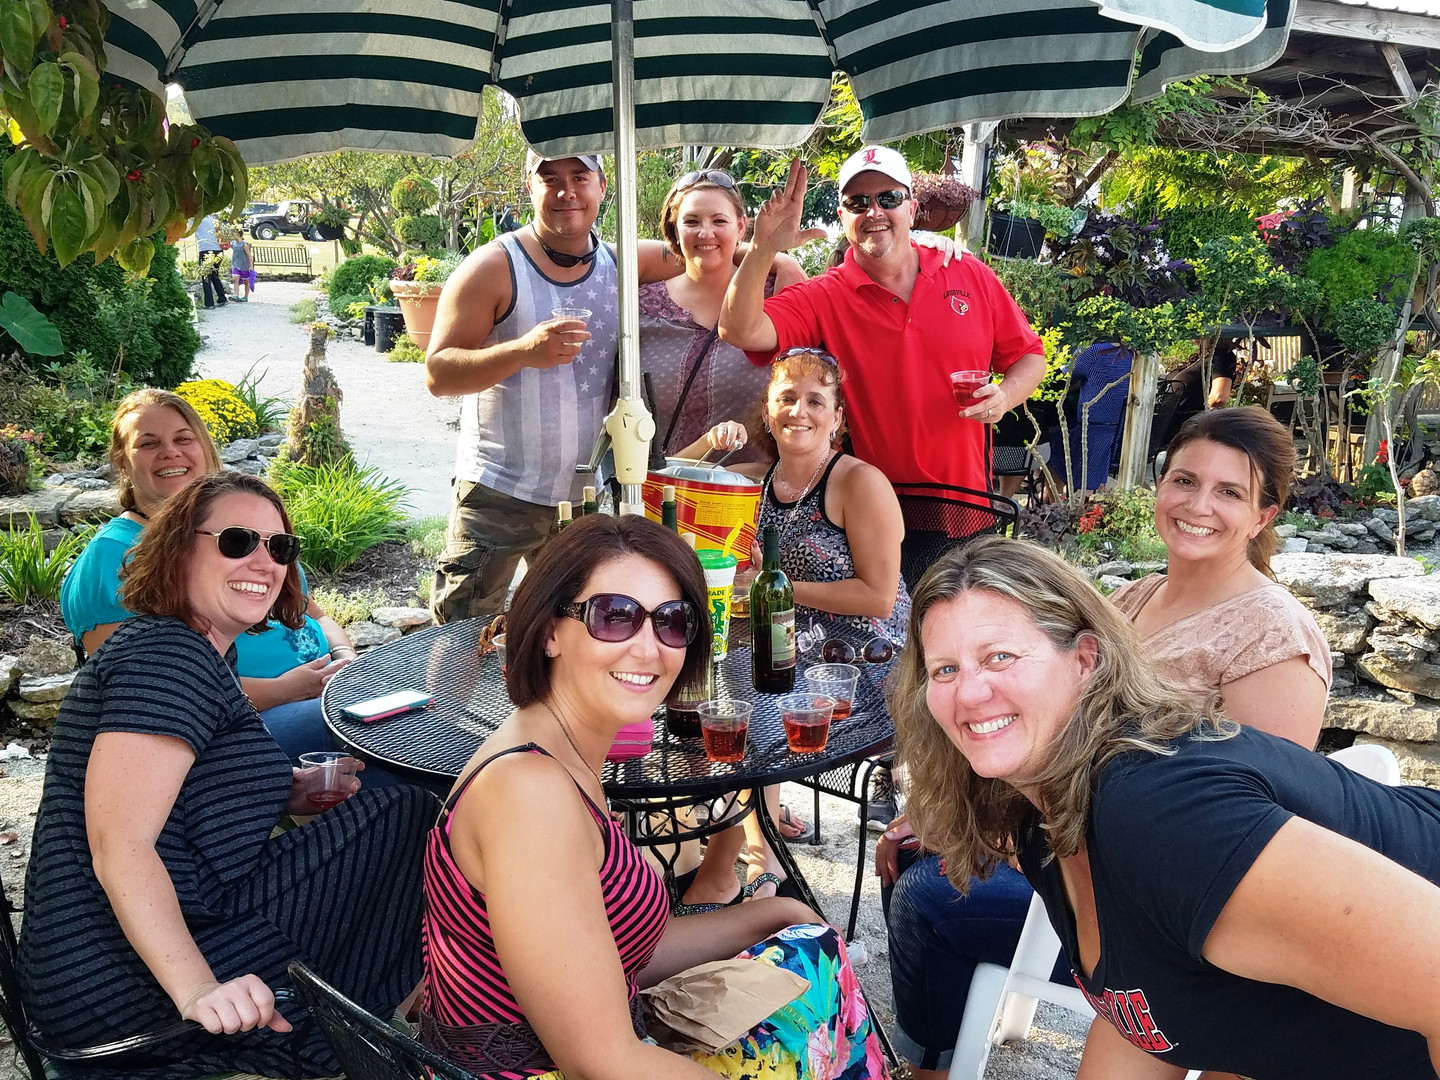 Lanthier Winery friends and fun in the g